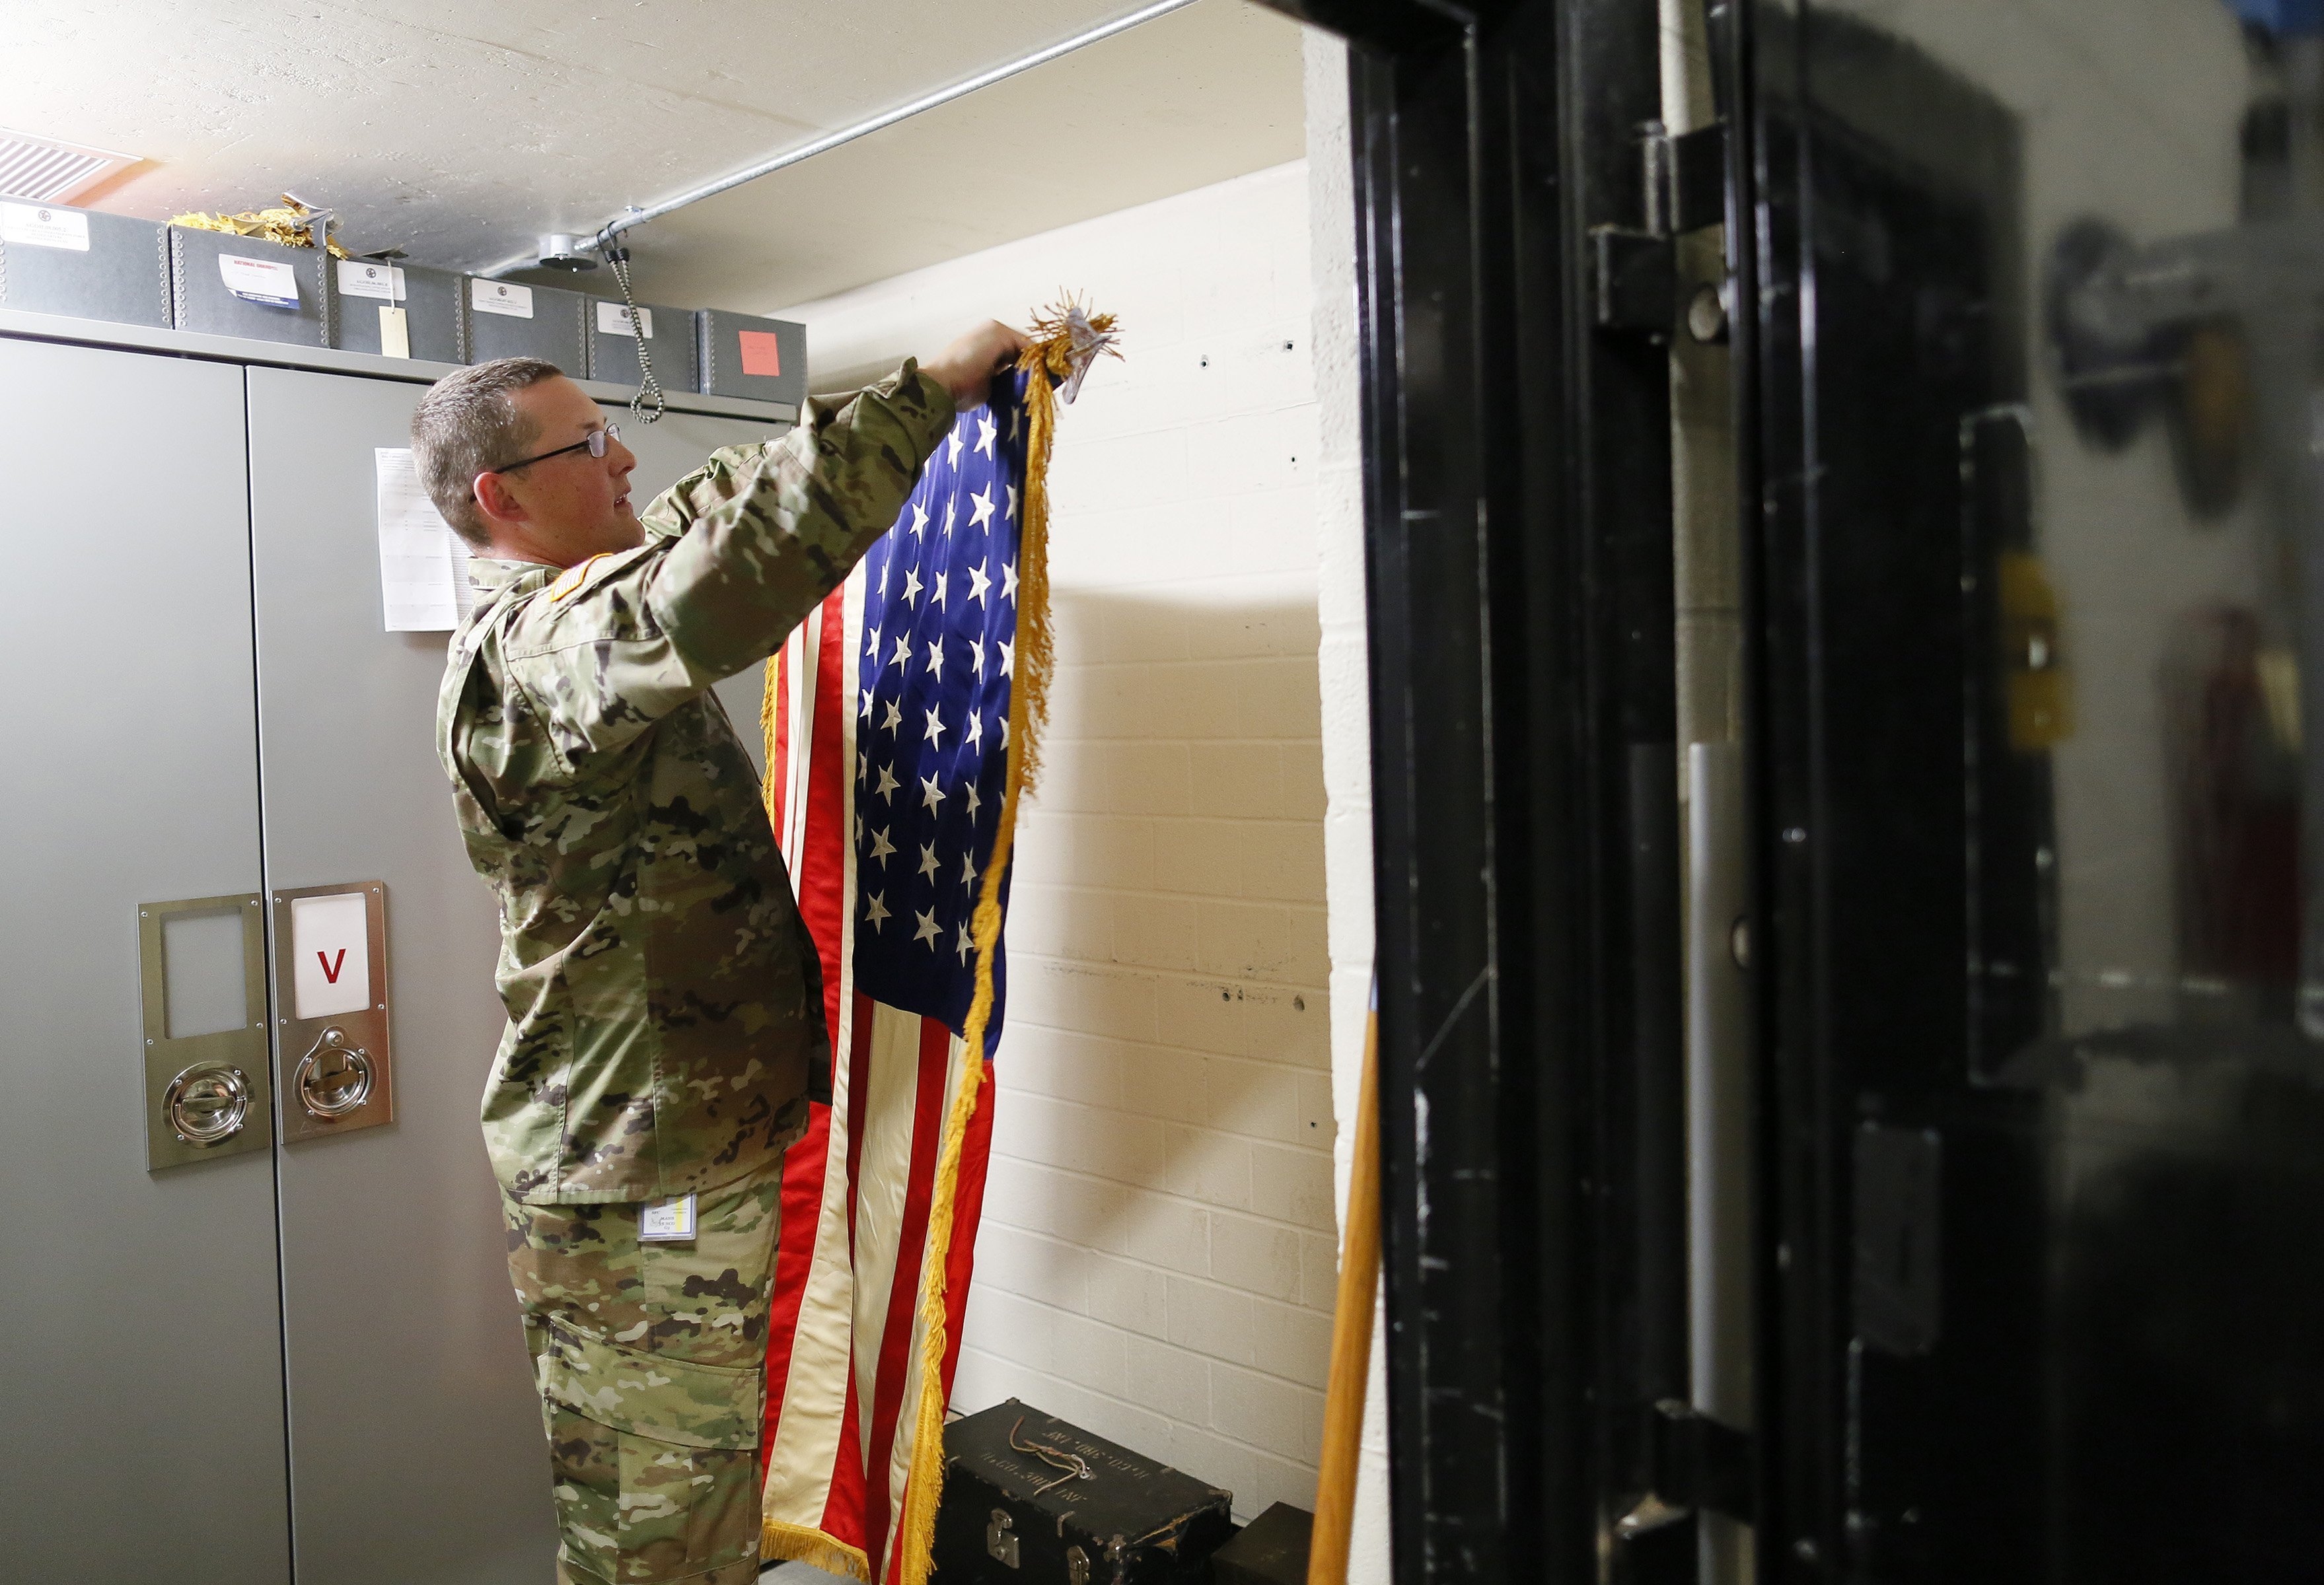 In this July 17, 2018, photo, Sgt. 1st Class Josh Mann, the Ohio Army National Guard historian, rolls an American flag that had been hanging in the temperature and humidity-controlled vault inside the Beightler Armory in Columbus, Ohio. The Ohio National Guard is celebrating its 230 years of service. (Adam Cairns/The Columbus Dispatch via AP)